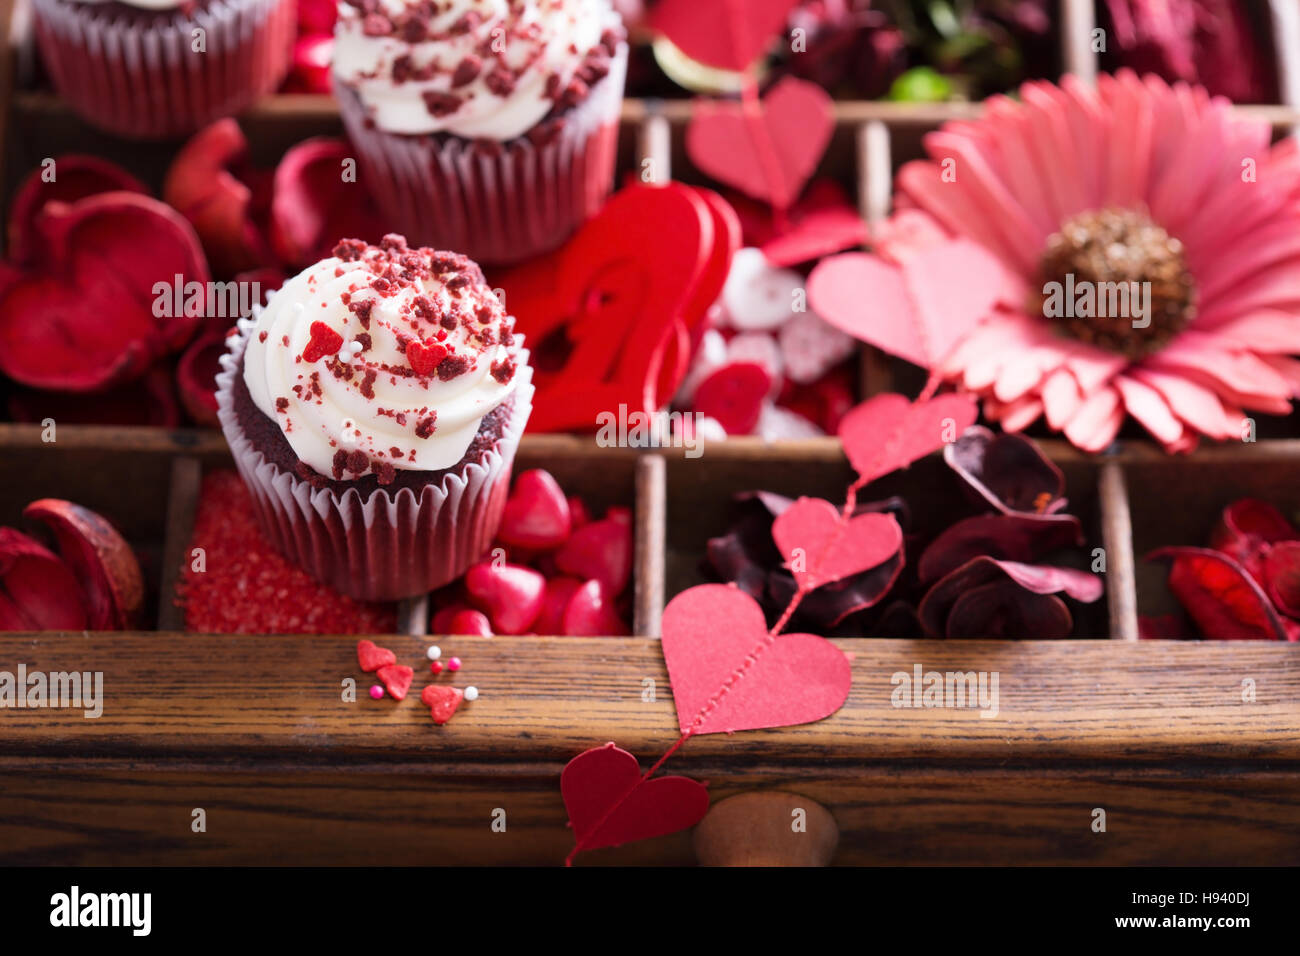 Red decorations for Valentines day - Stock Image